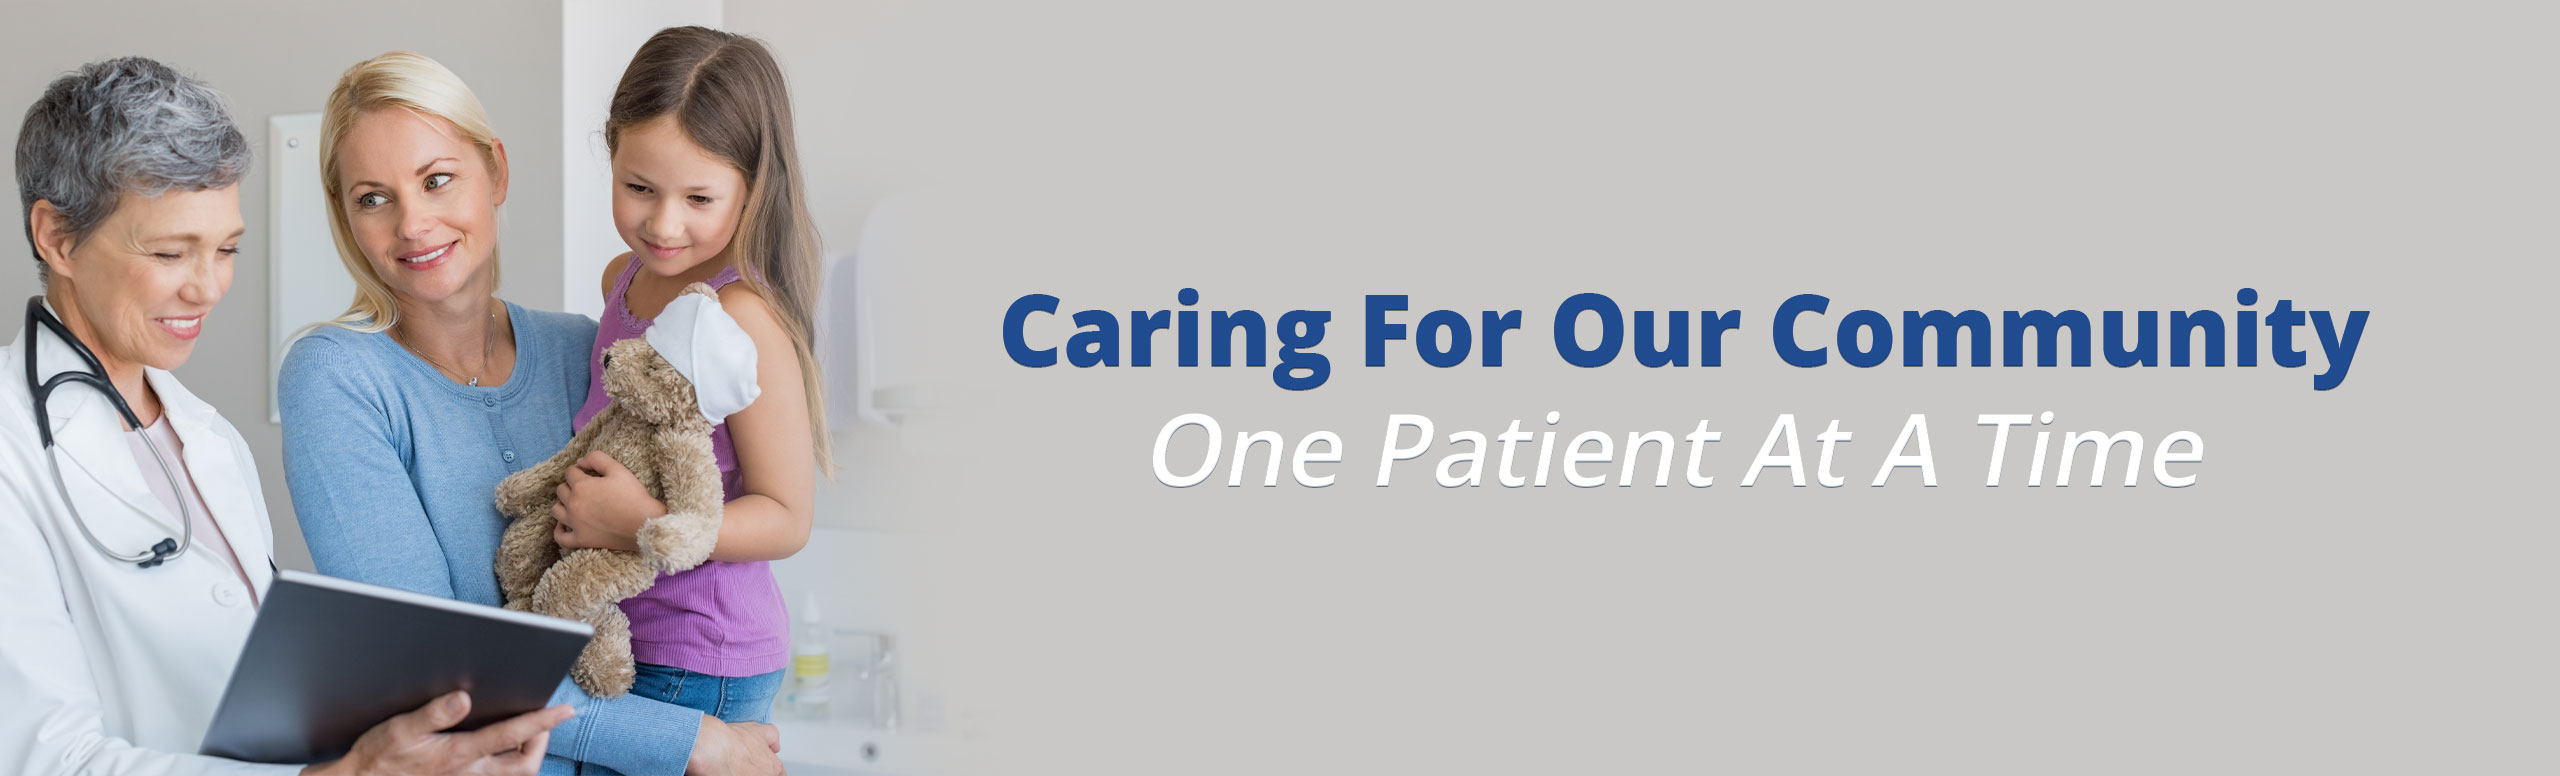 Caring for our community. One patient at a time.